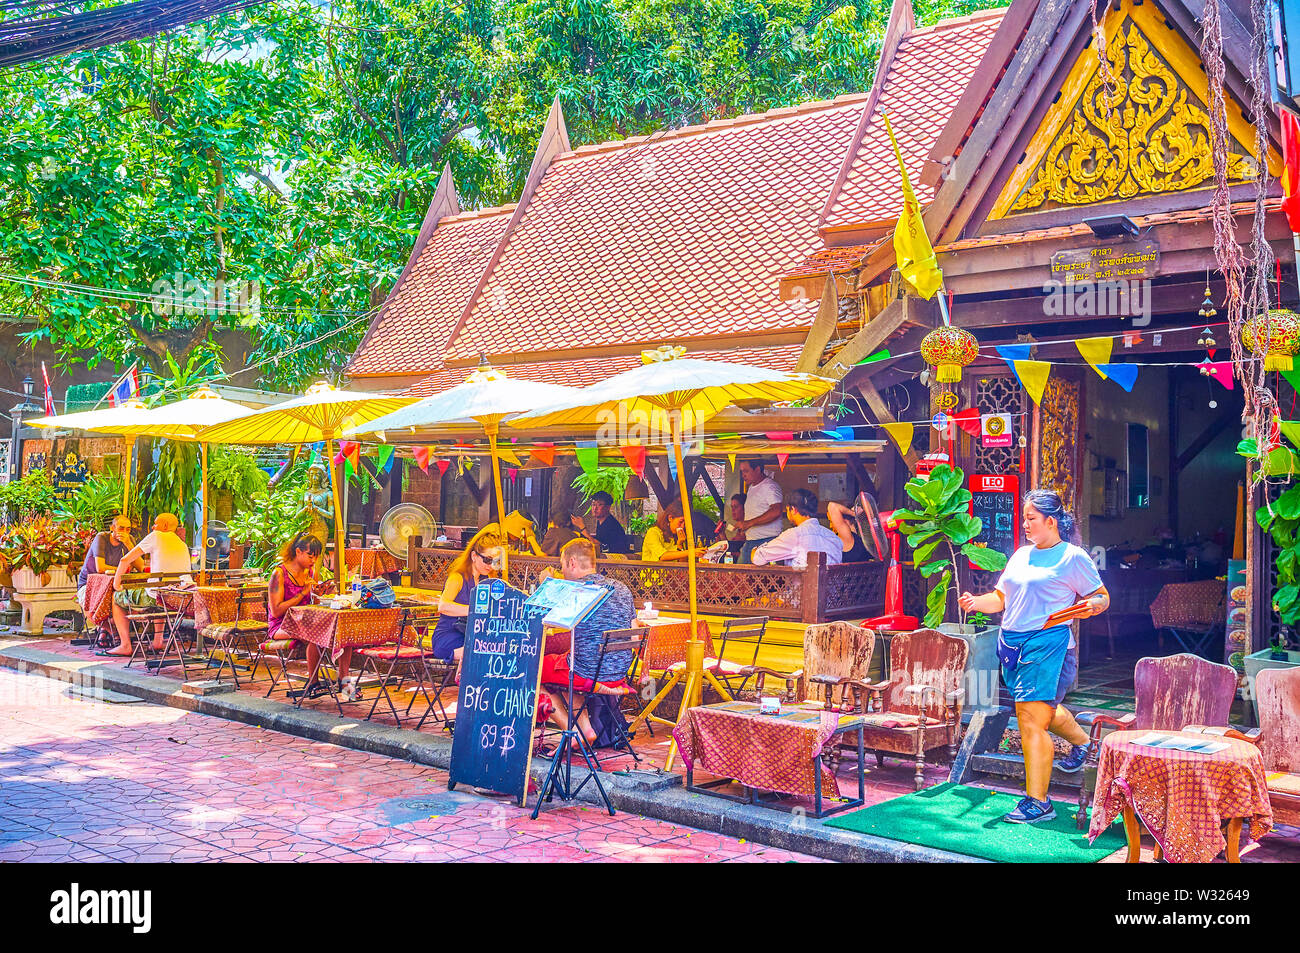 BANGKOK, THAILAND - APRIL 22, 2019: The cozy open air terrace of the restaurant, located in traditional Thai building with carved entrance porch, on A - Stock Image